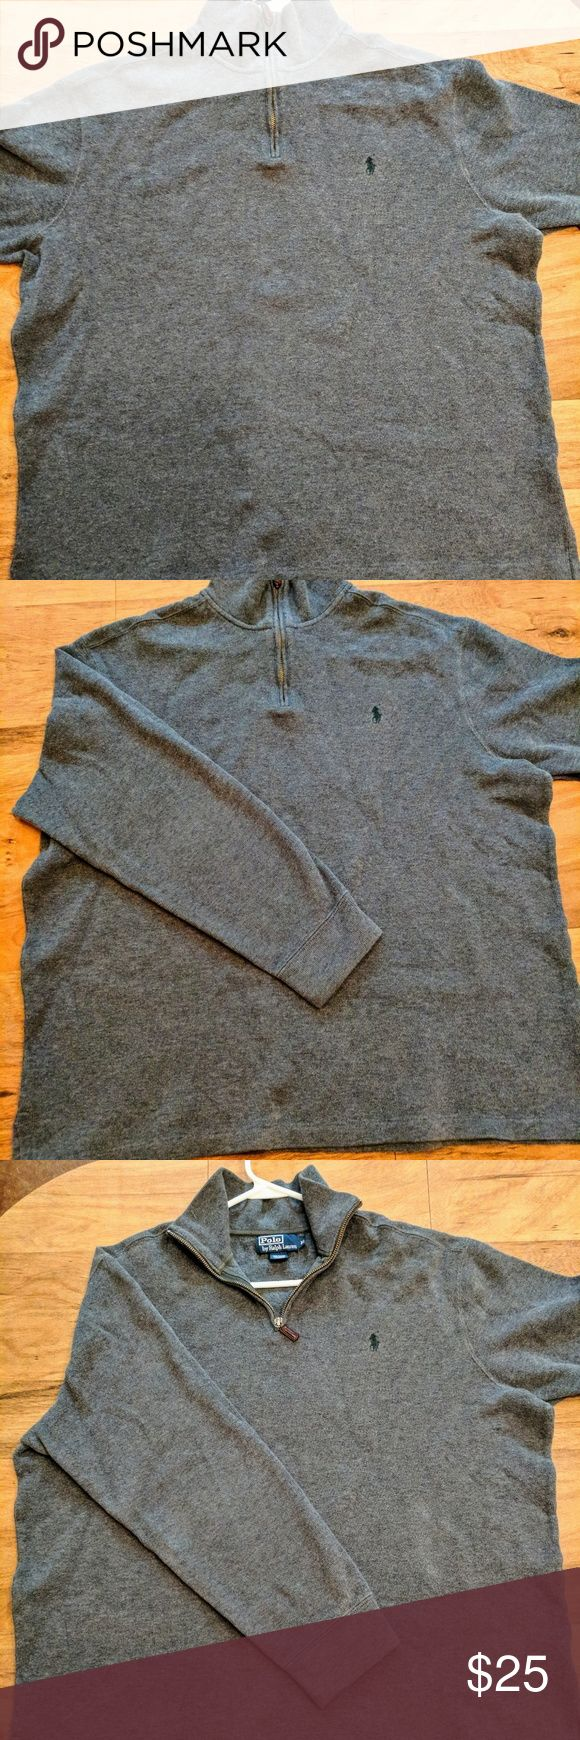 Polo Ralph Lauren Pullover Sweater!  Mens XL Men's XL Polo Ralph Lauren pullover zip sweater.  Beautiful gray color and perfect condition!    Sweater may or may not have been previously worn, but is in perfect condition!     Follow AZvintageSport on Instagram @AZvintageSport Polo by Ralph Lauren Sweaters Zip Up